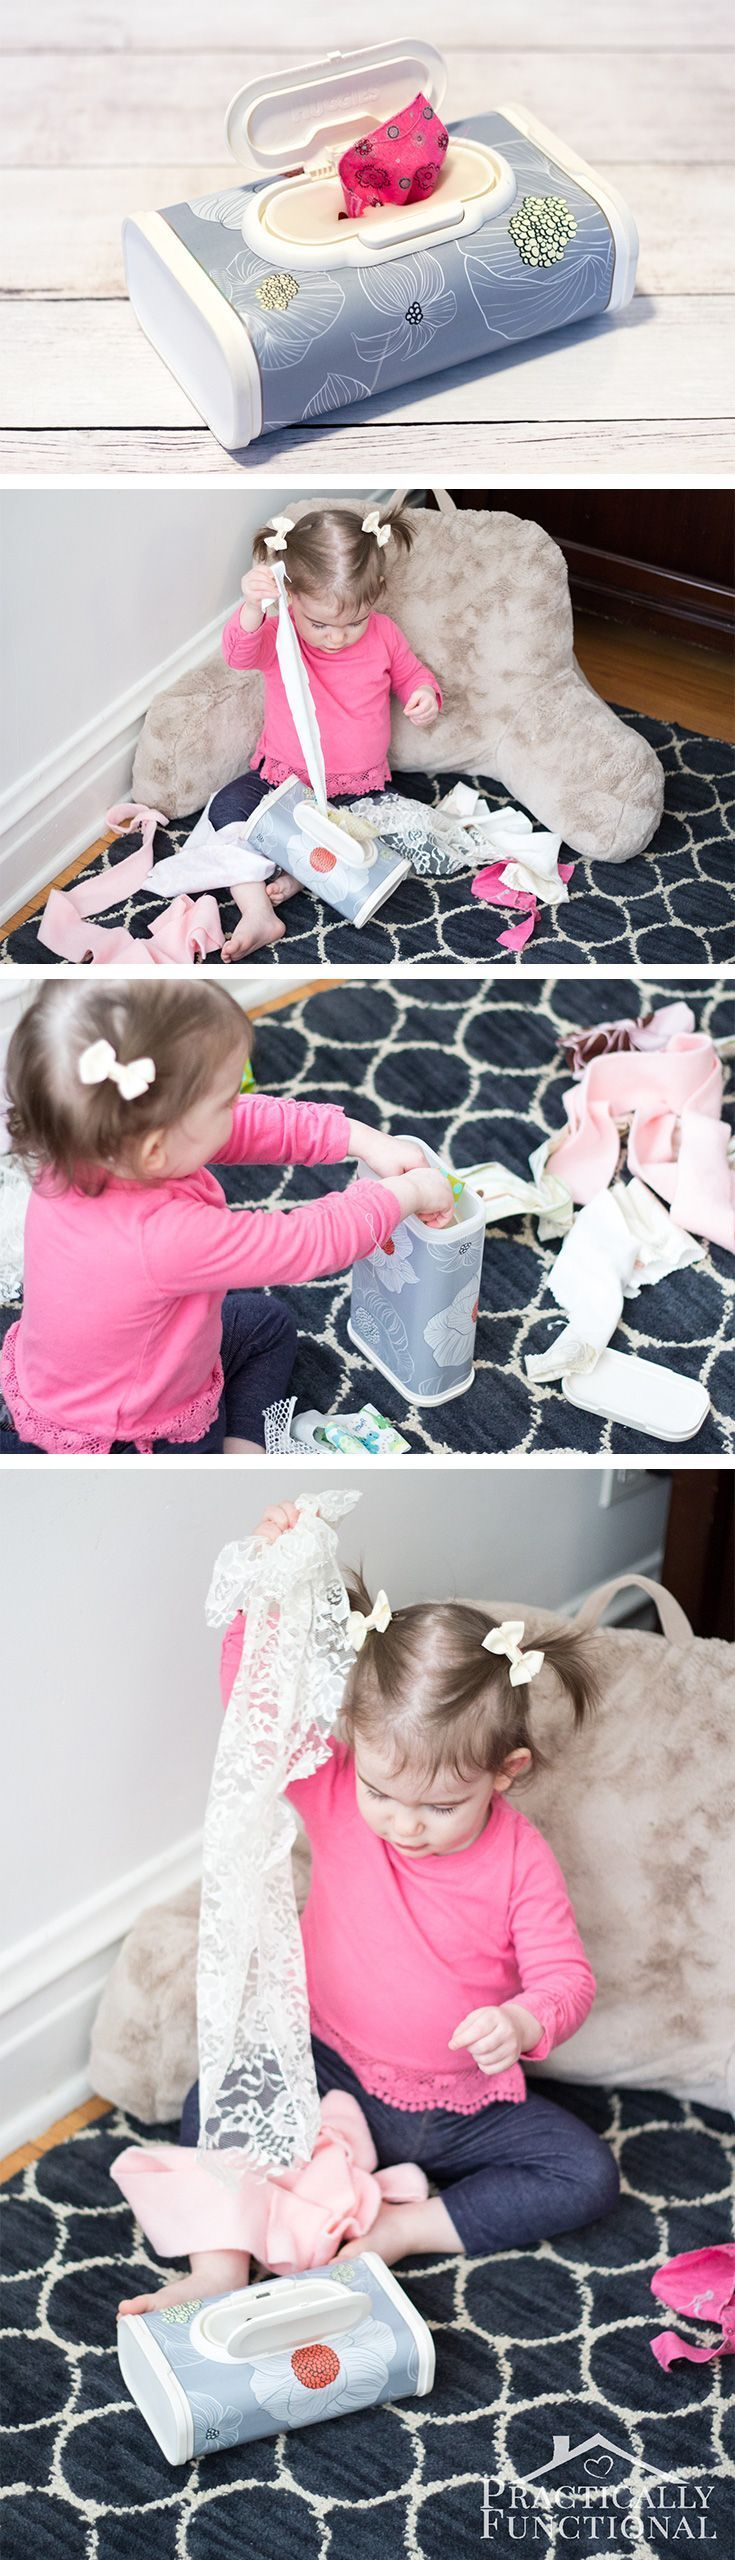 Fill an empty wipes container with a bunch of fabric scraps to keep your toddler happy, entertained, and out of your hair for a while!